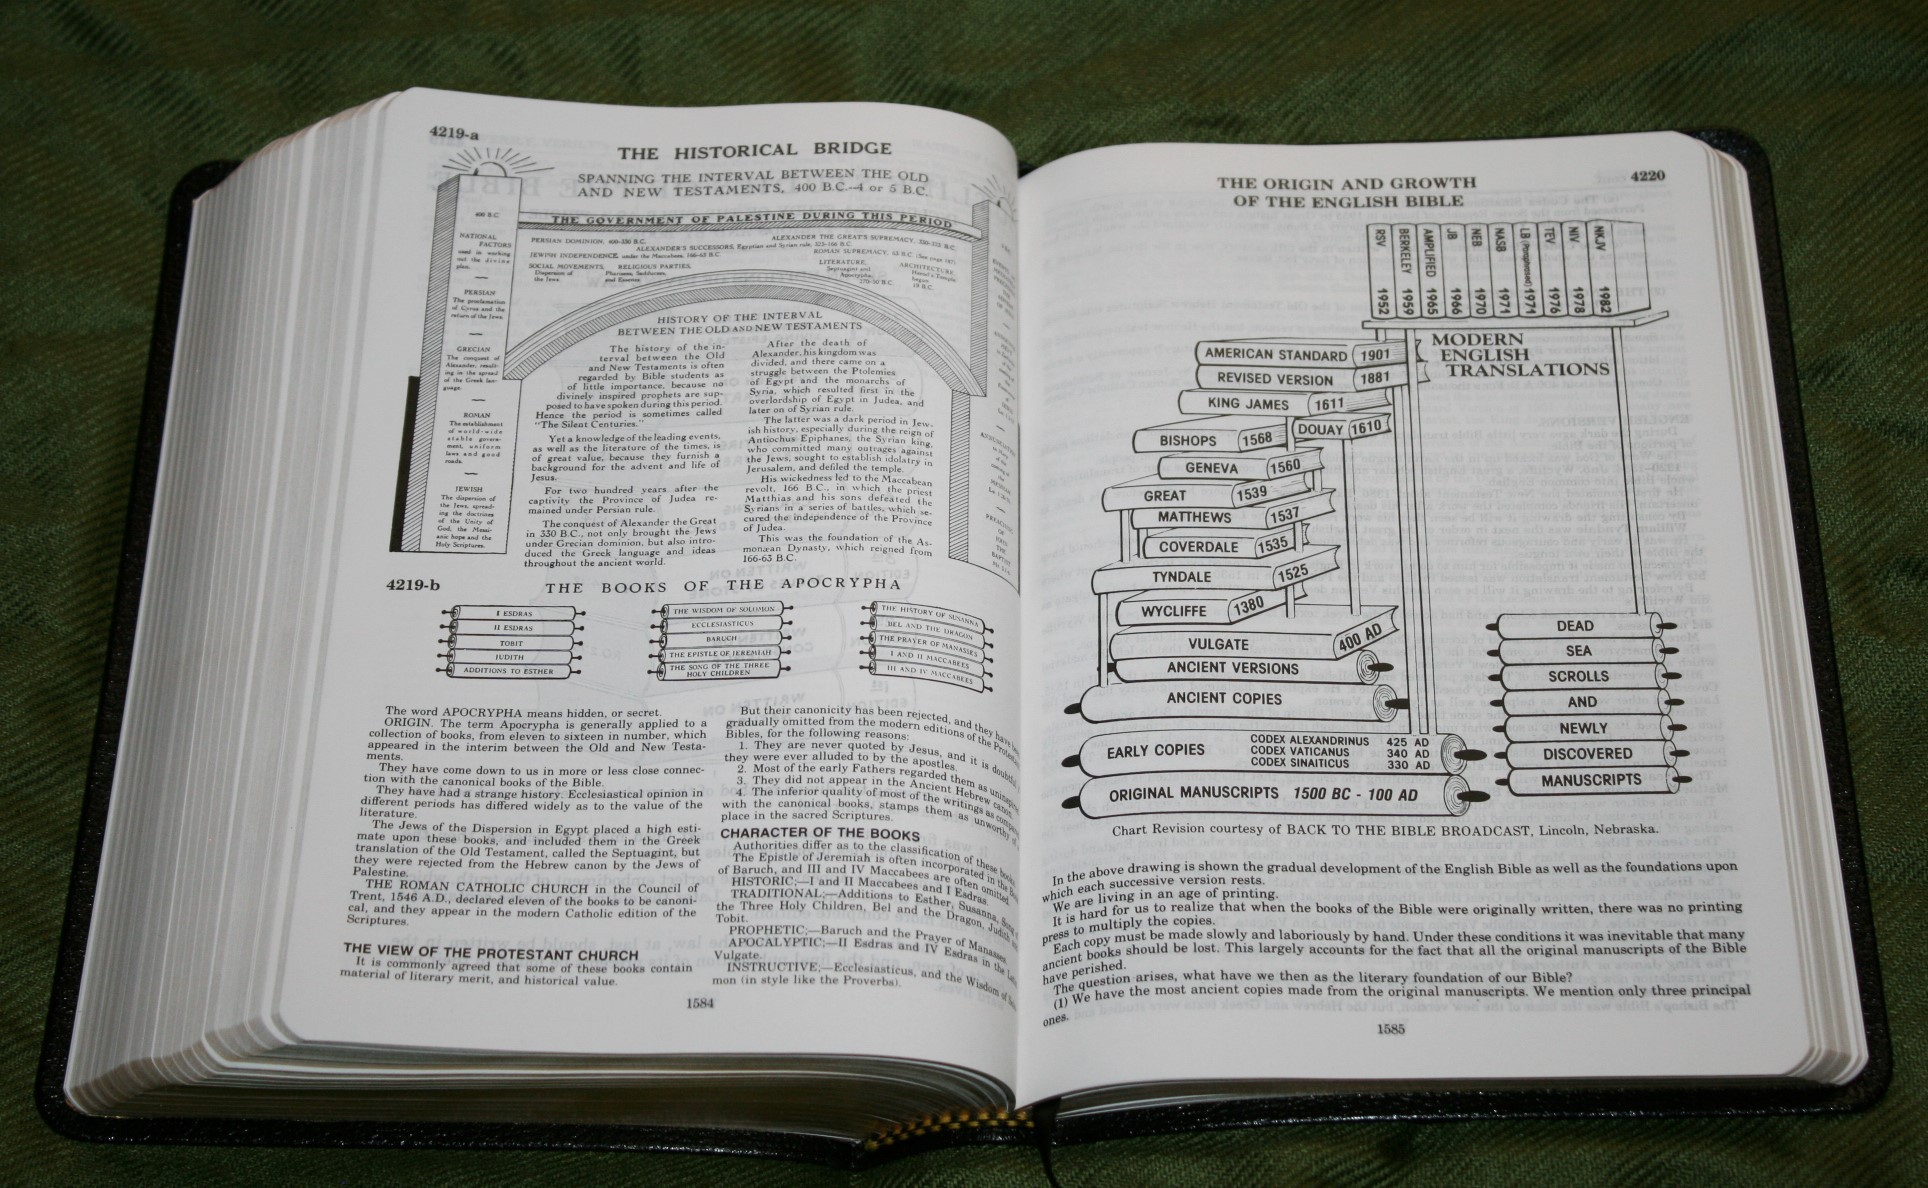 Handy Size Thompson Chain Reference Bible KJV (164)